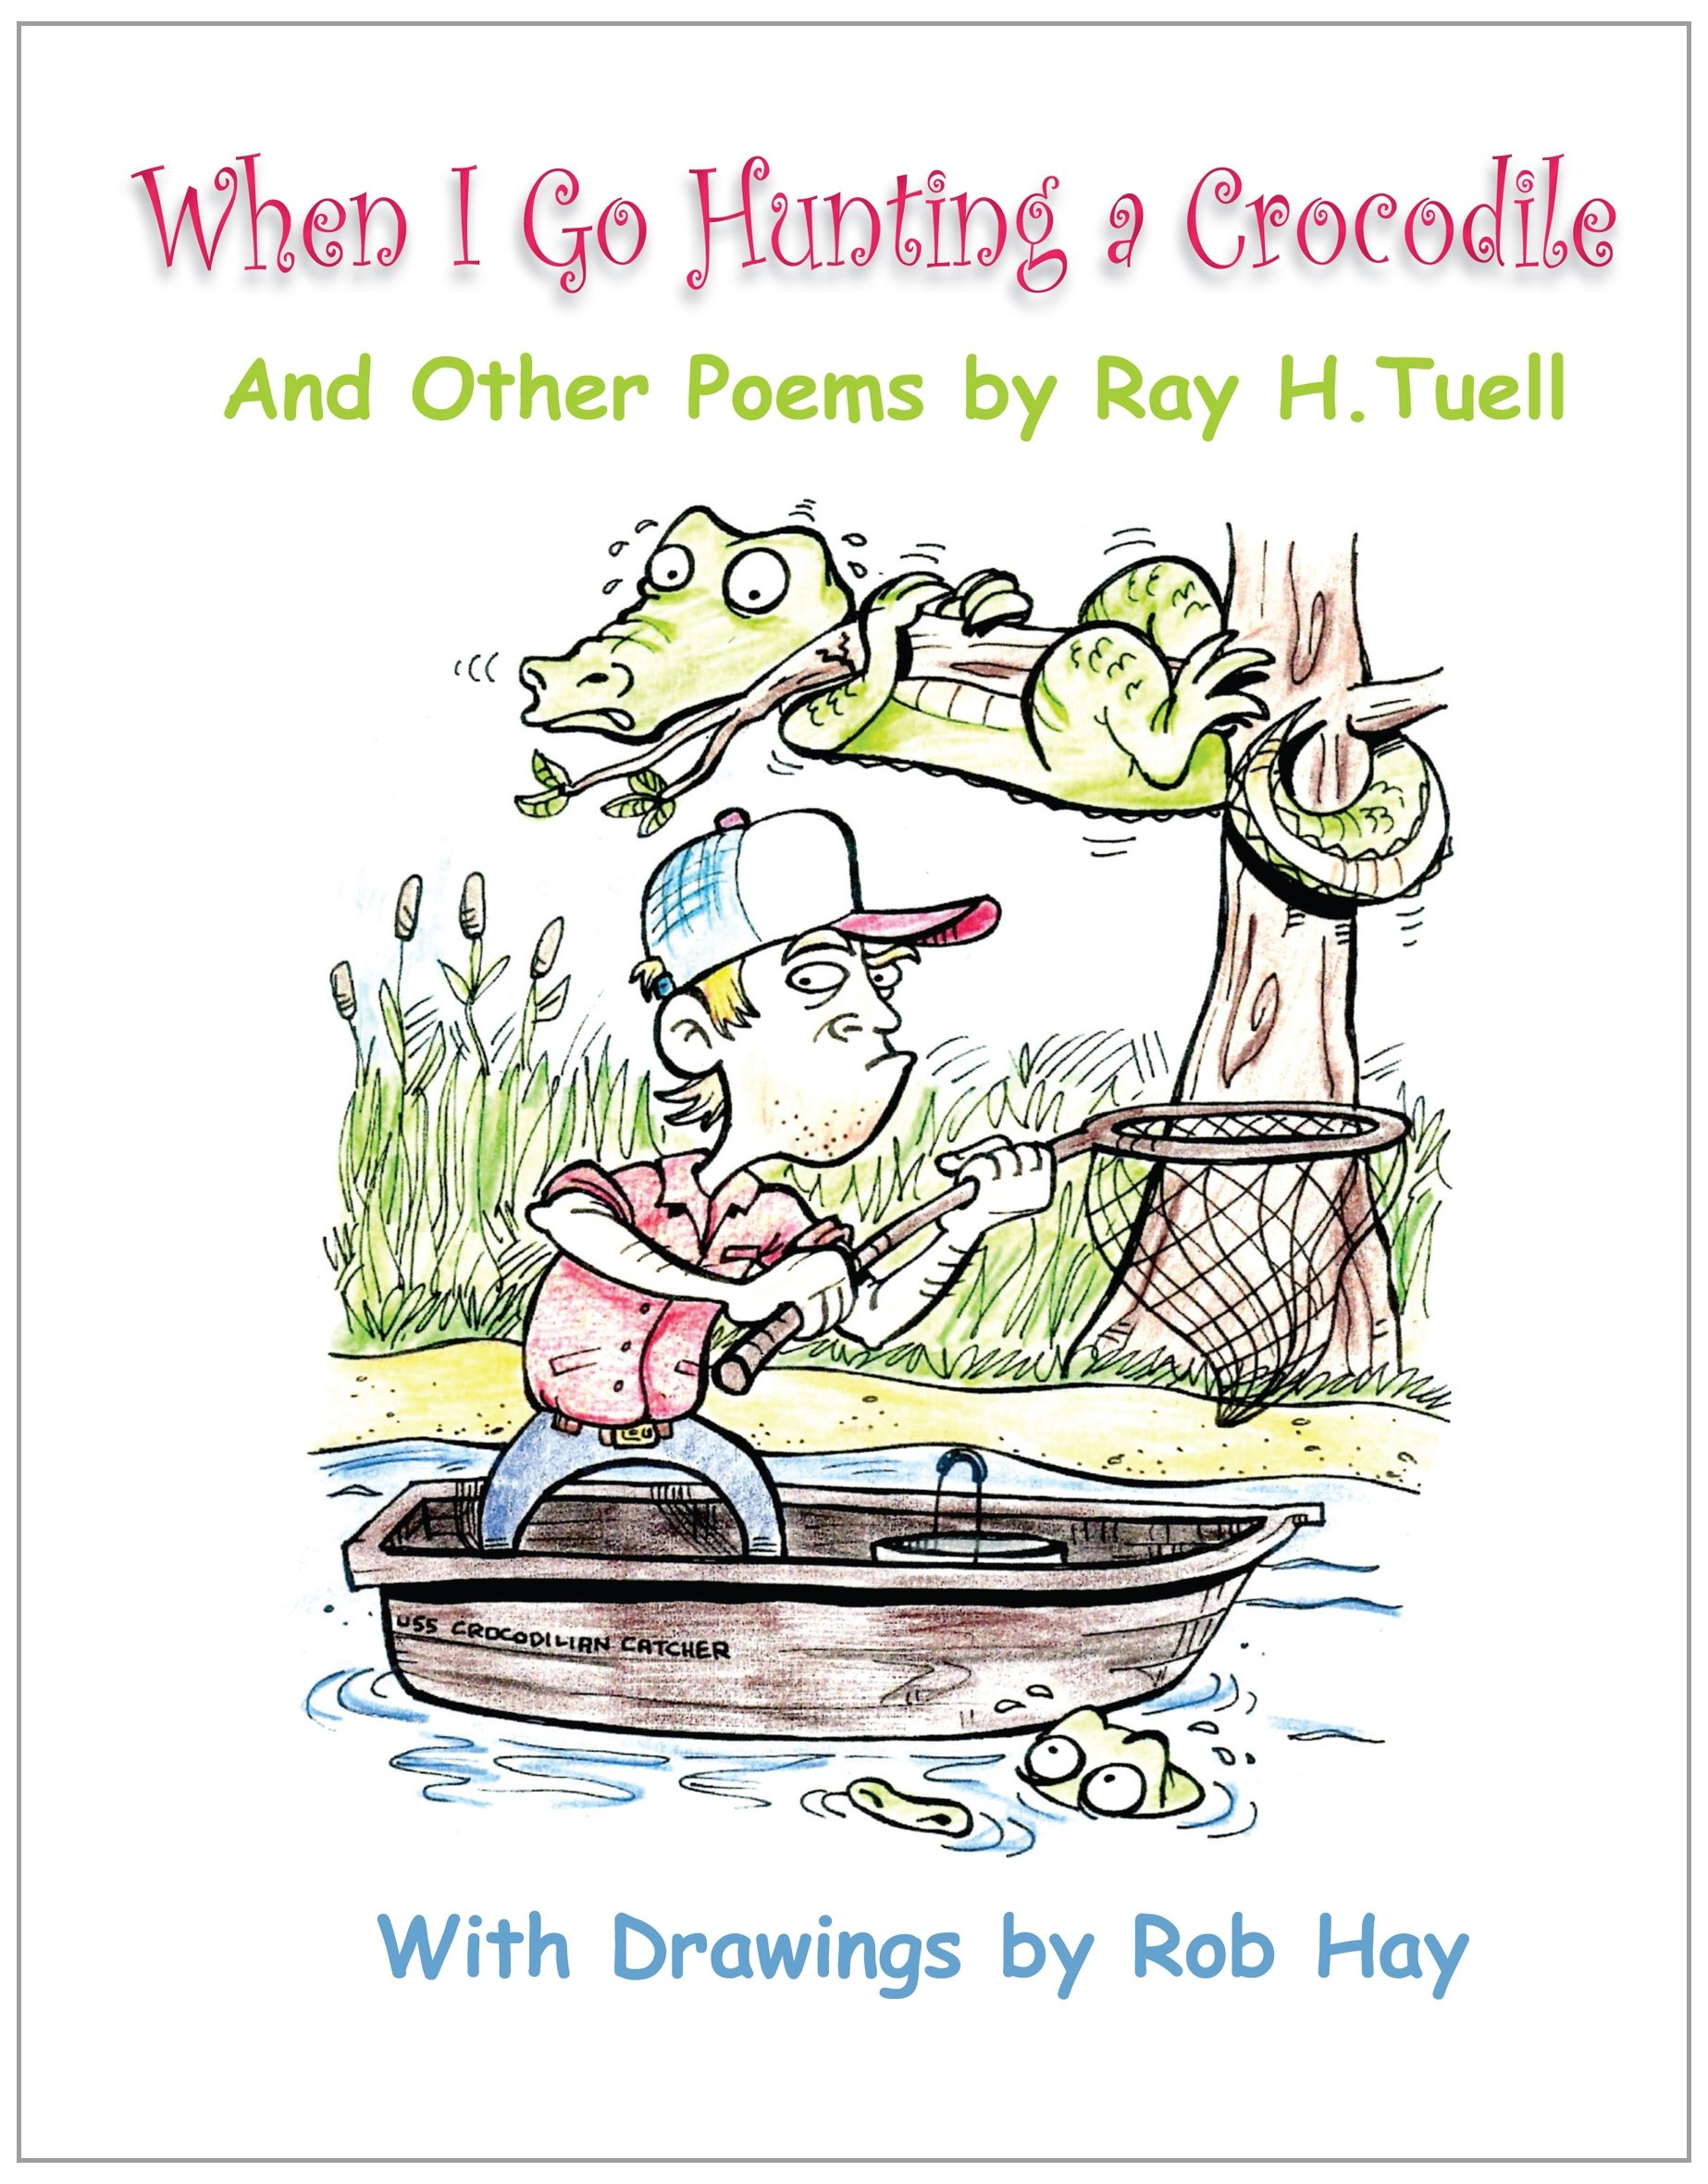 When I Go Hunting a Crocodile: And Other Poems by Ray H. Tuell pdf